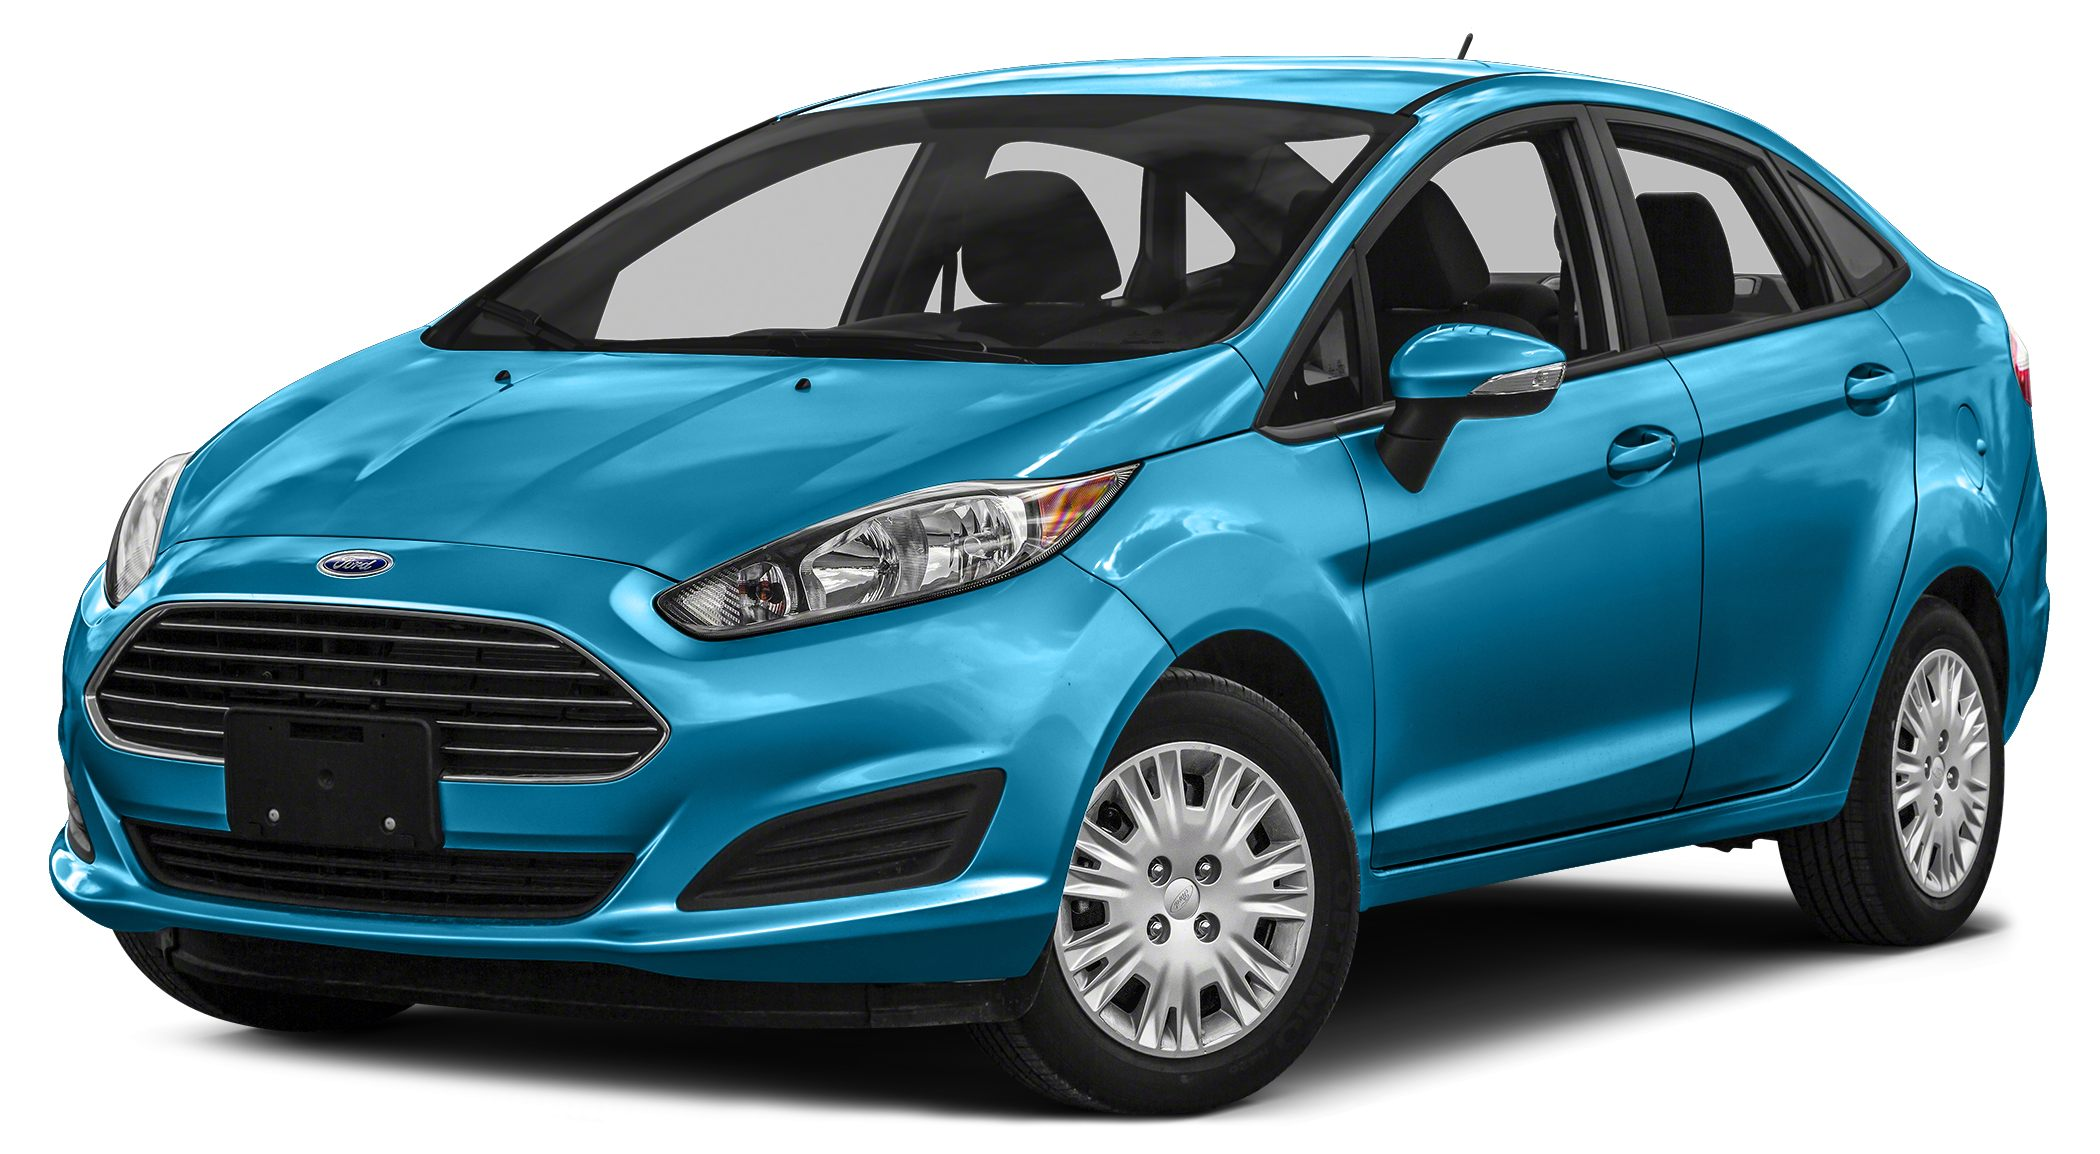 2016 Ford Fiesta SE ONLY 28K MILES AUTOMATIC TRANSMISSION SYNC PREMIUM BLUE METALLIC COLOR PER